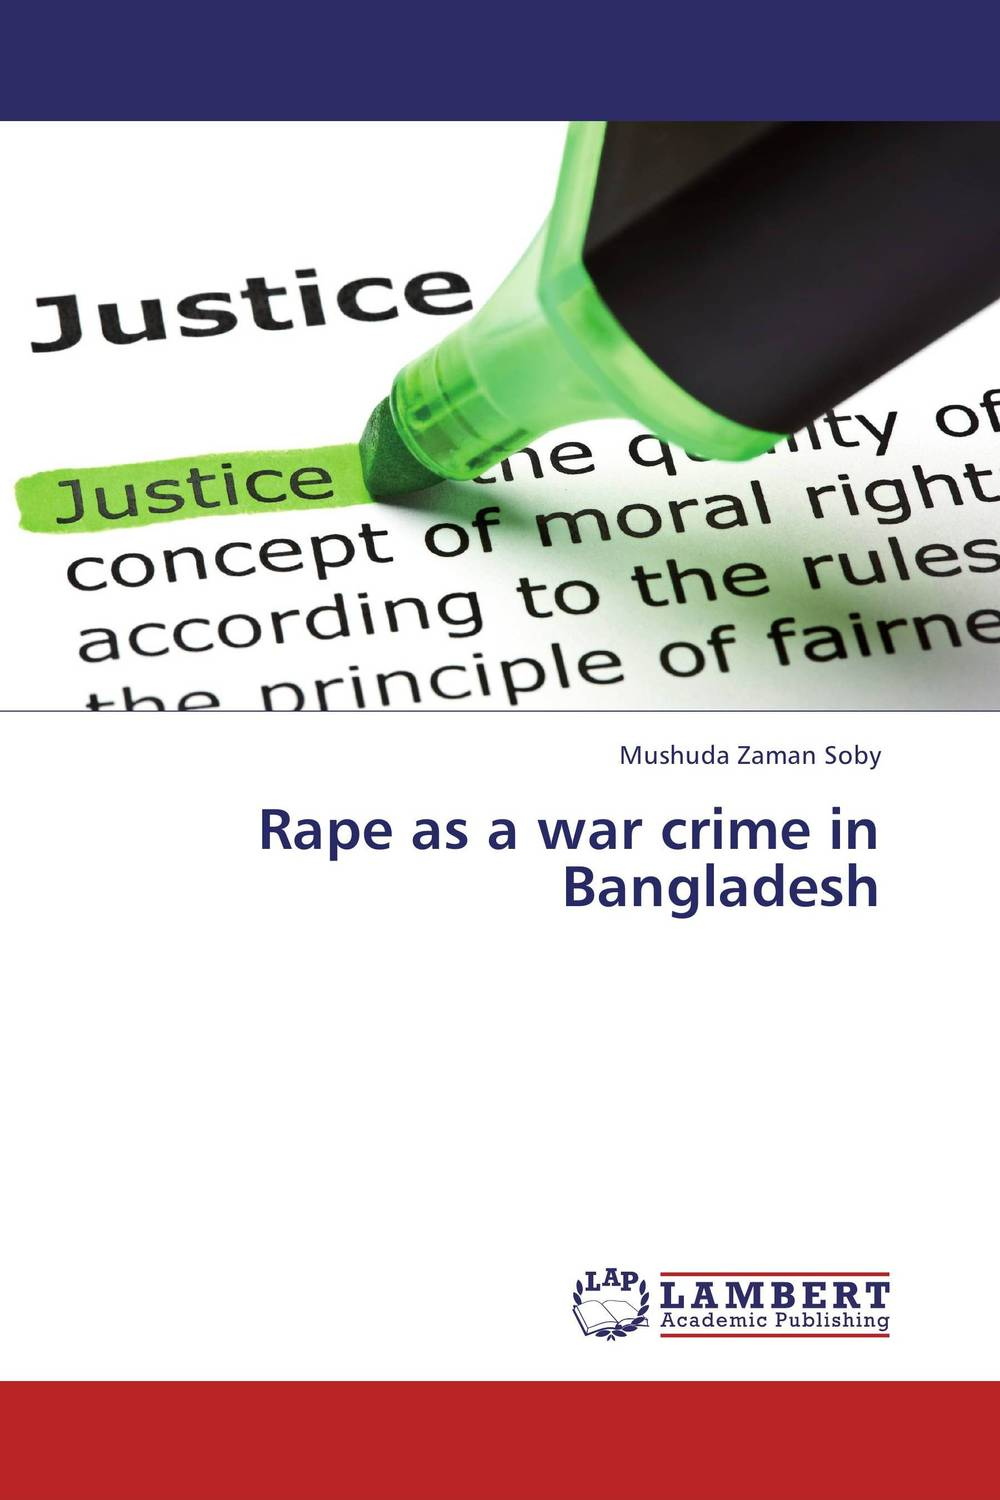 Rape as a war crime in Bangladesh